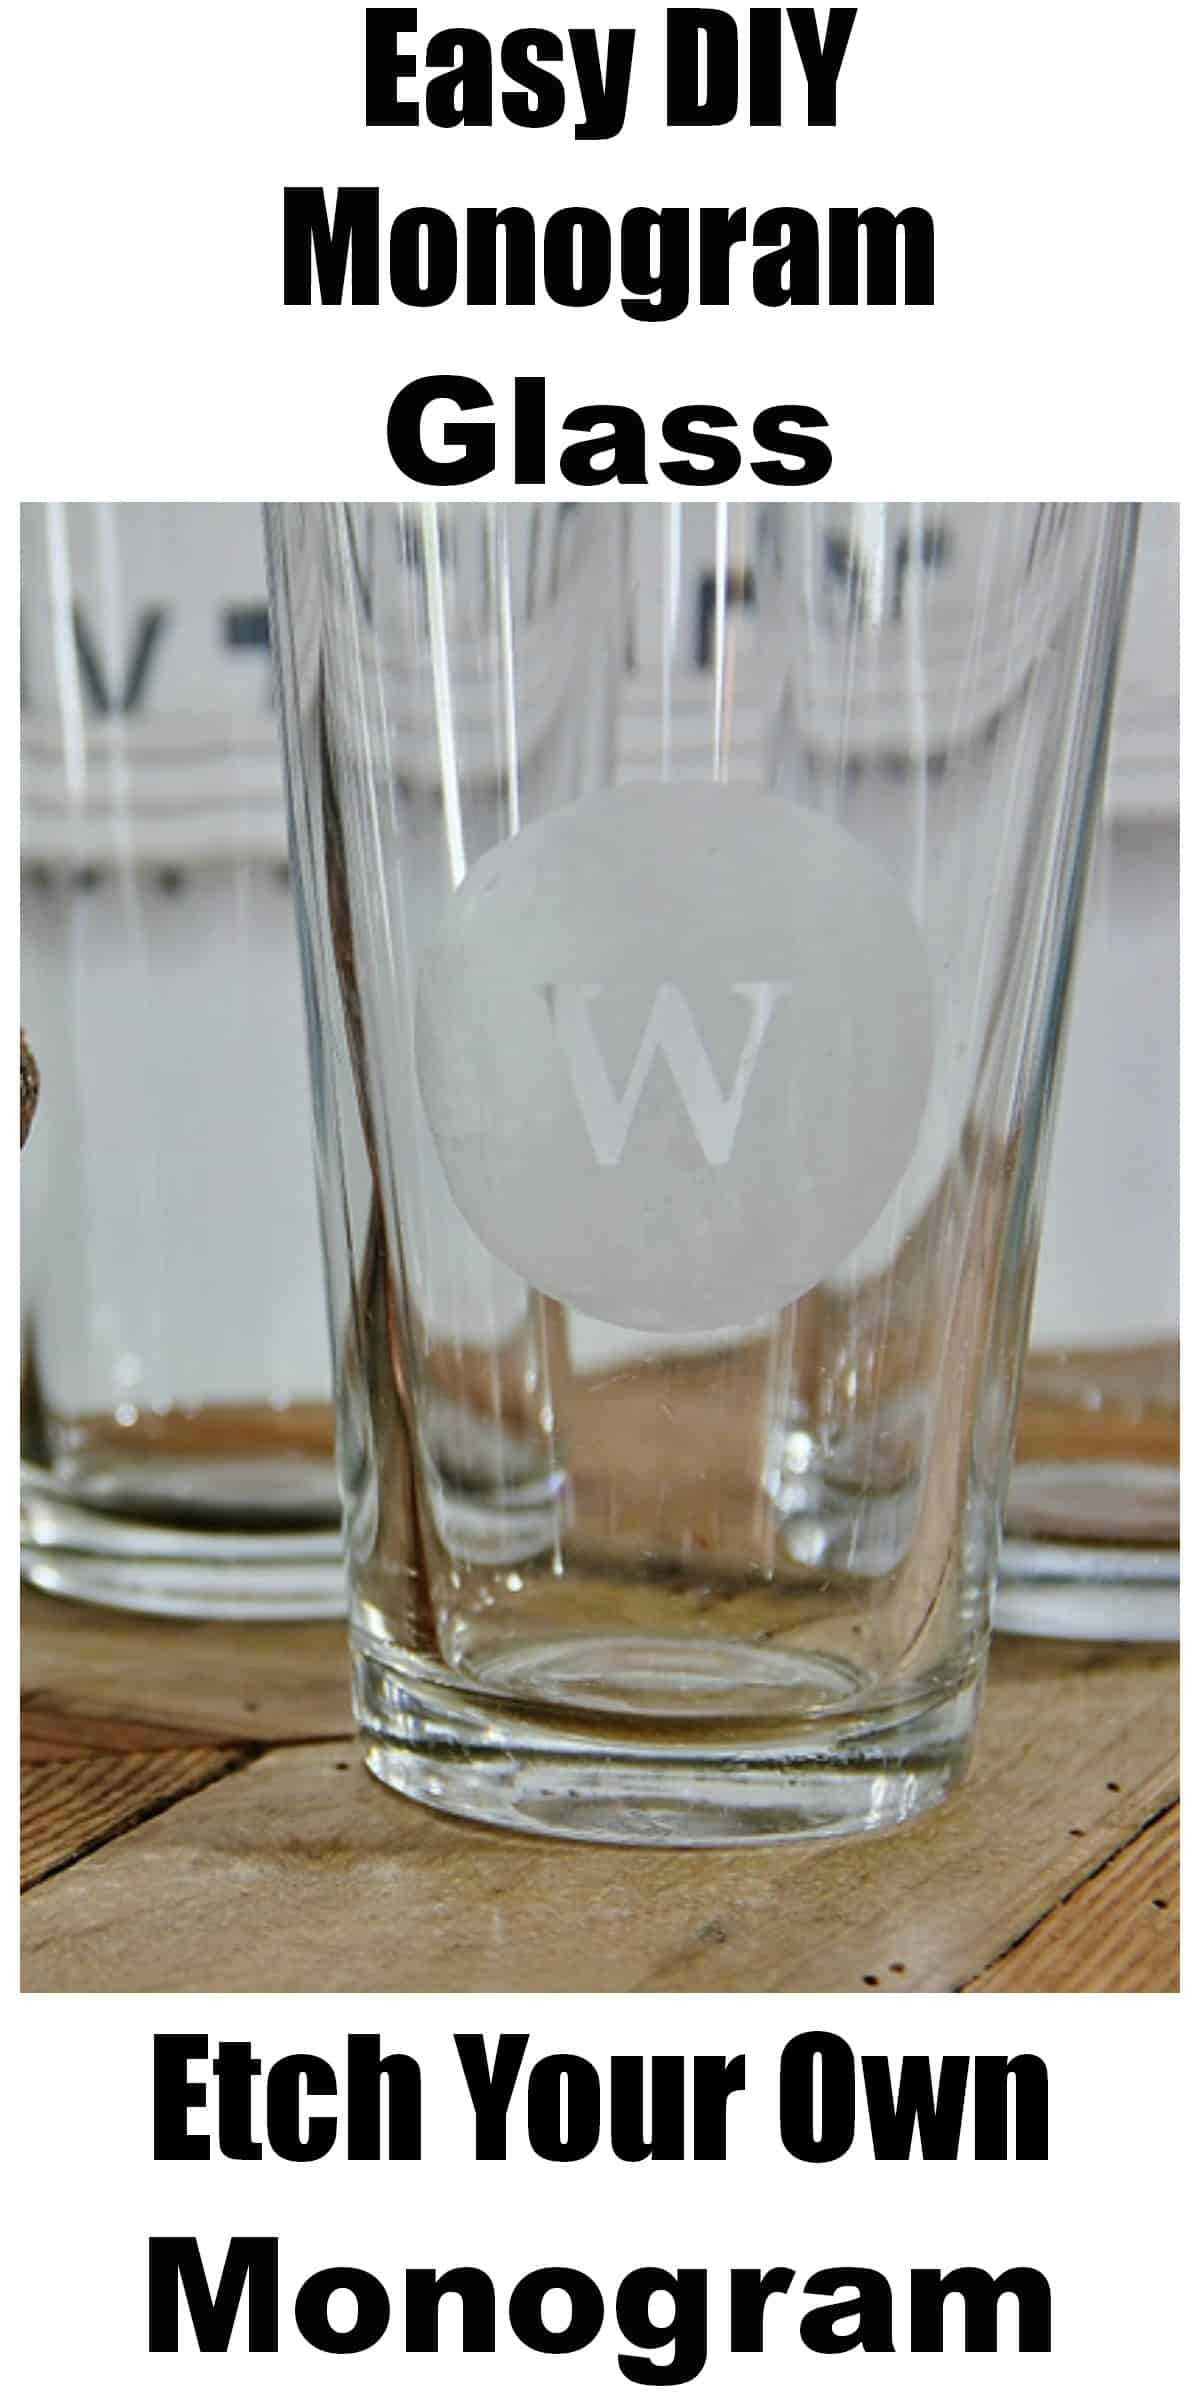 etched-glass-monogram